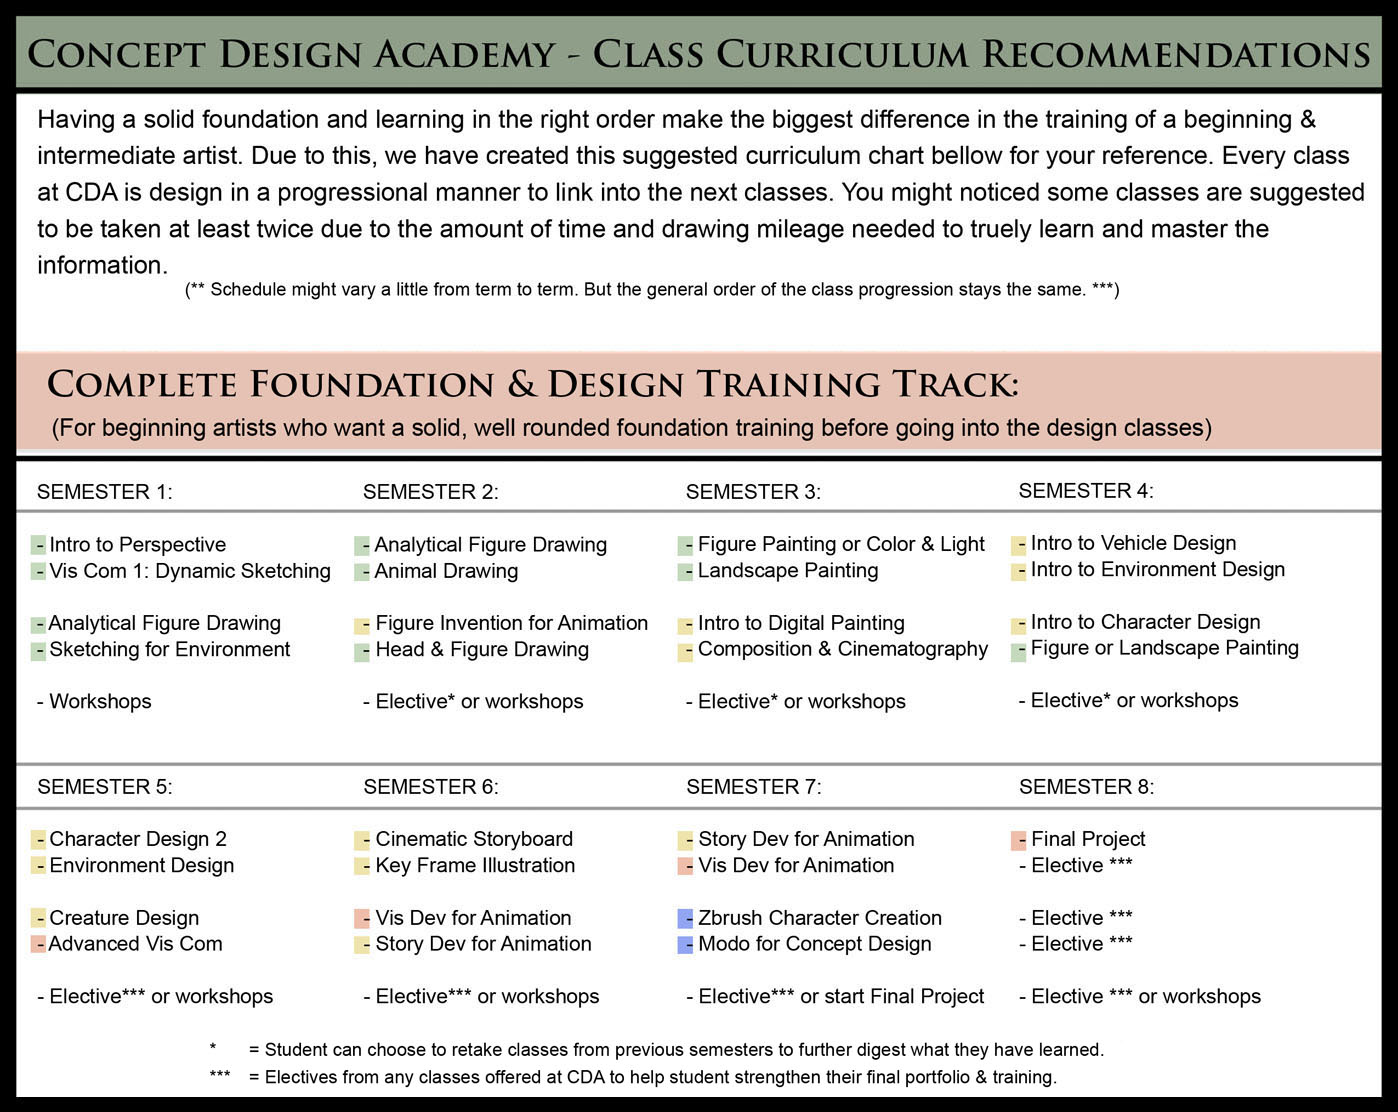 CDA+Complete+Foundation+and+Design+Track.jpg